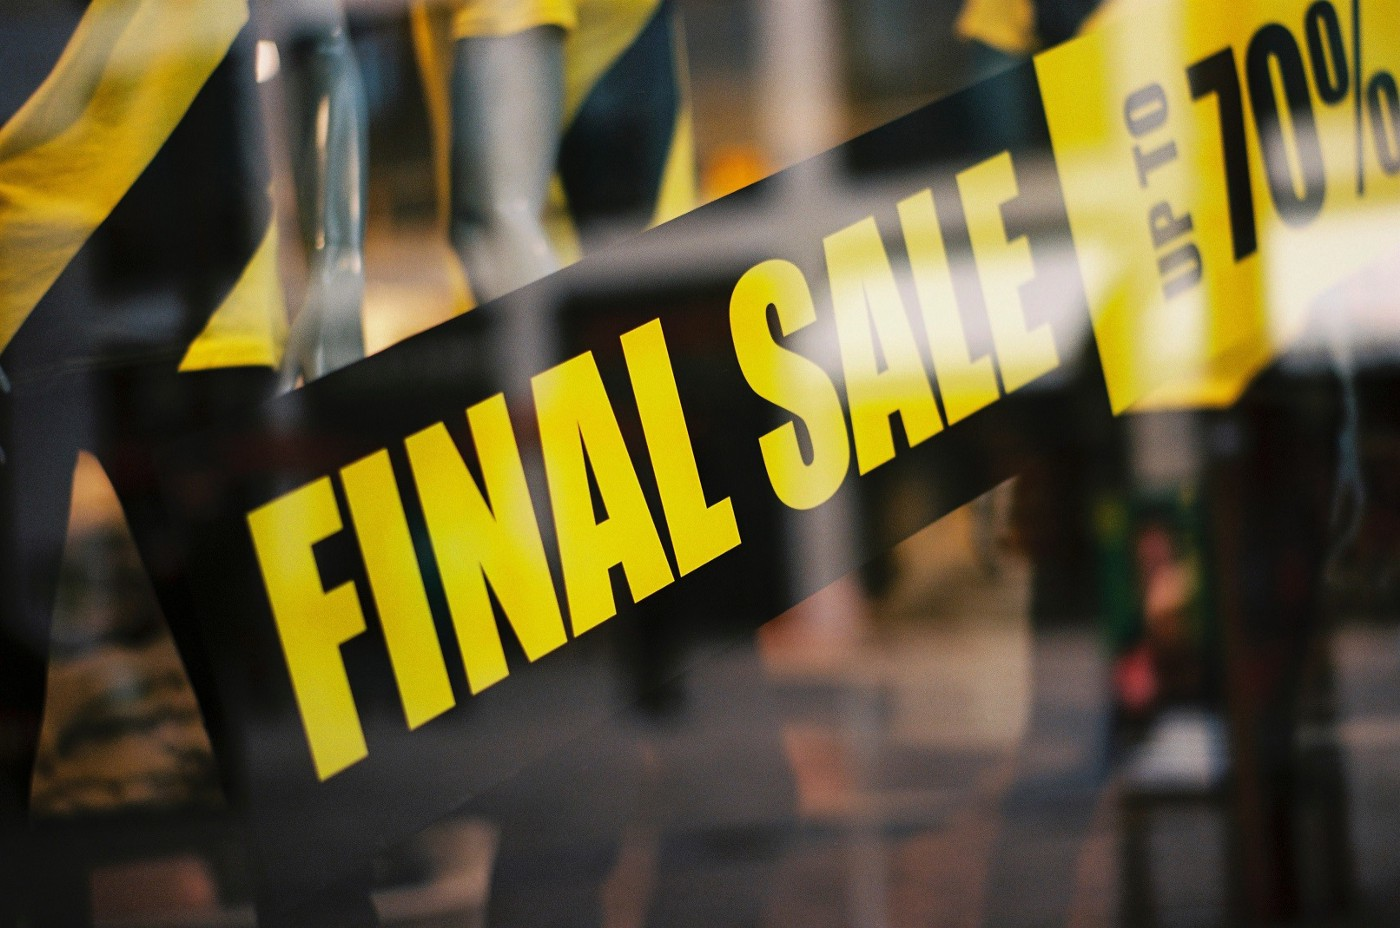 Sale signs on shop fronts